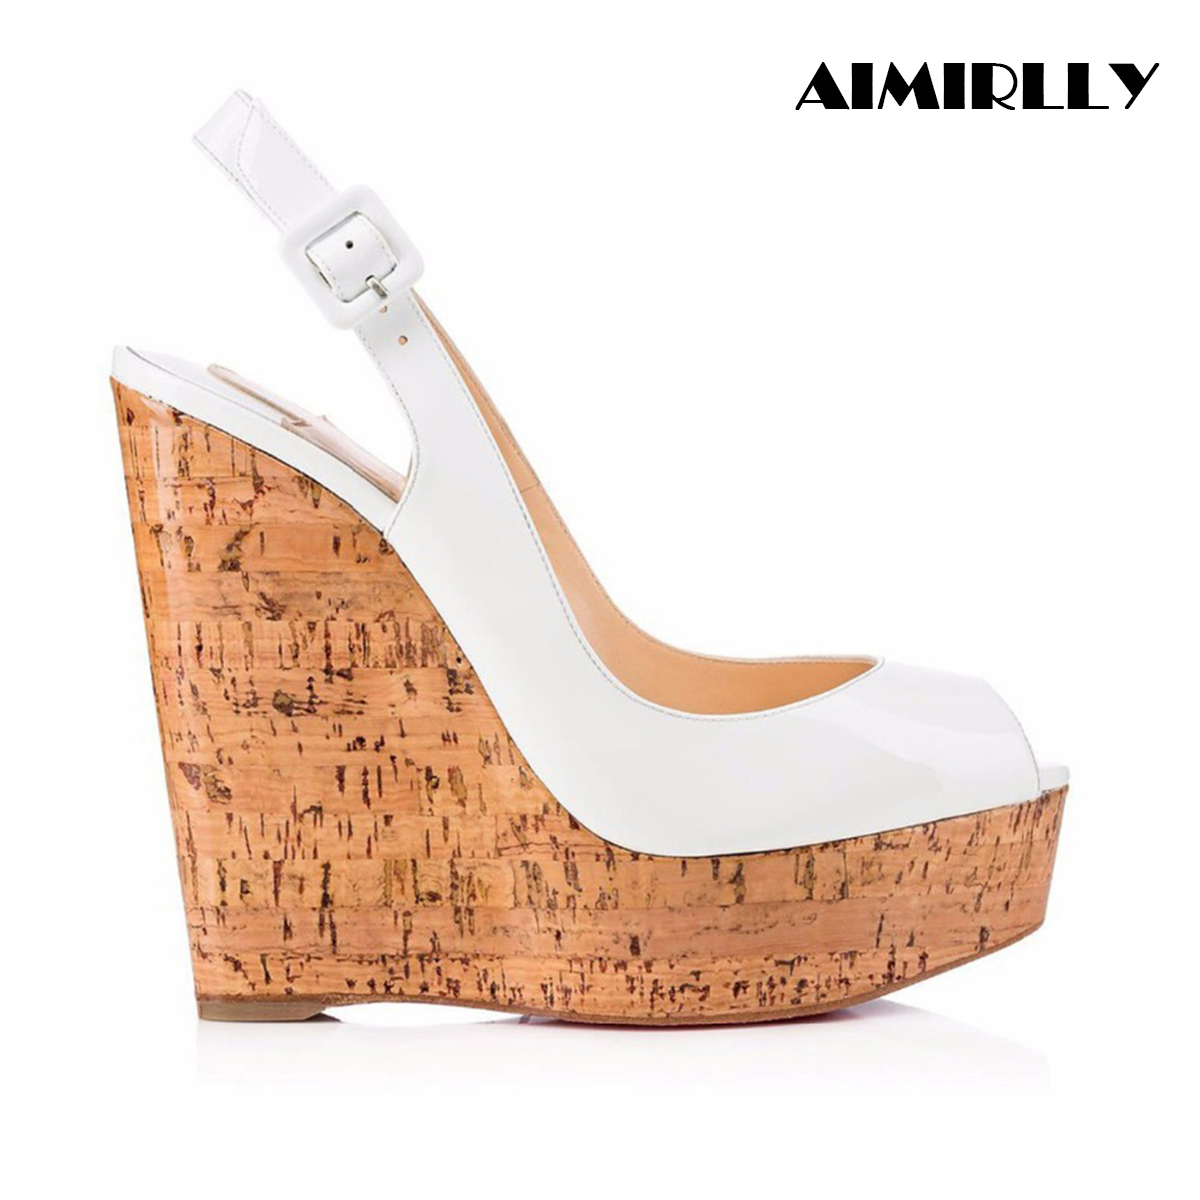 Aimirlly Women Cork Wedge Sky High Platform High Heel Sandals Slingback Pumps Summer Shoes Comfortable to